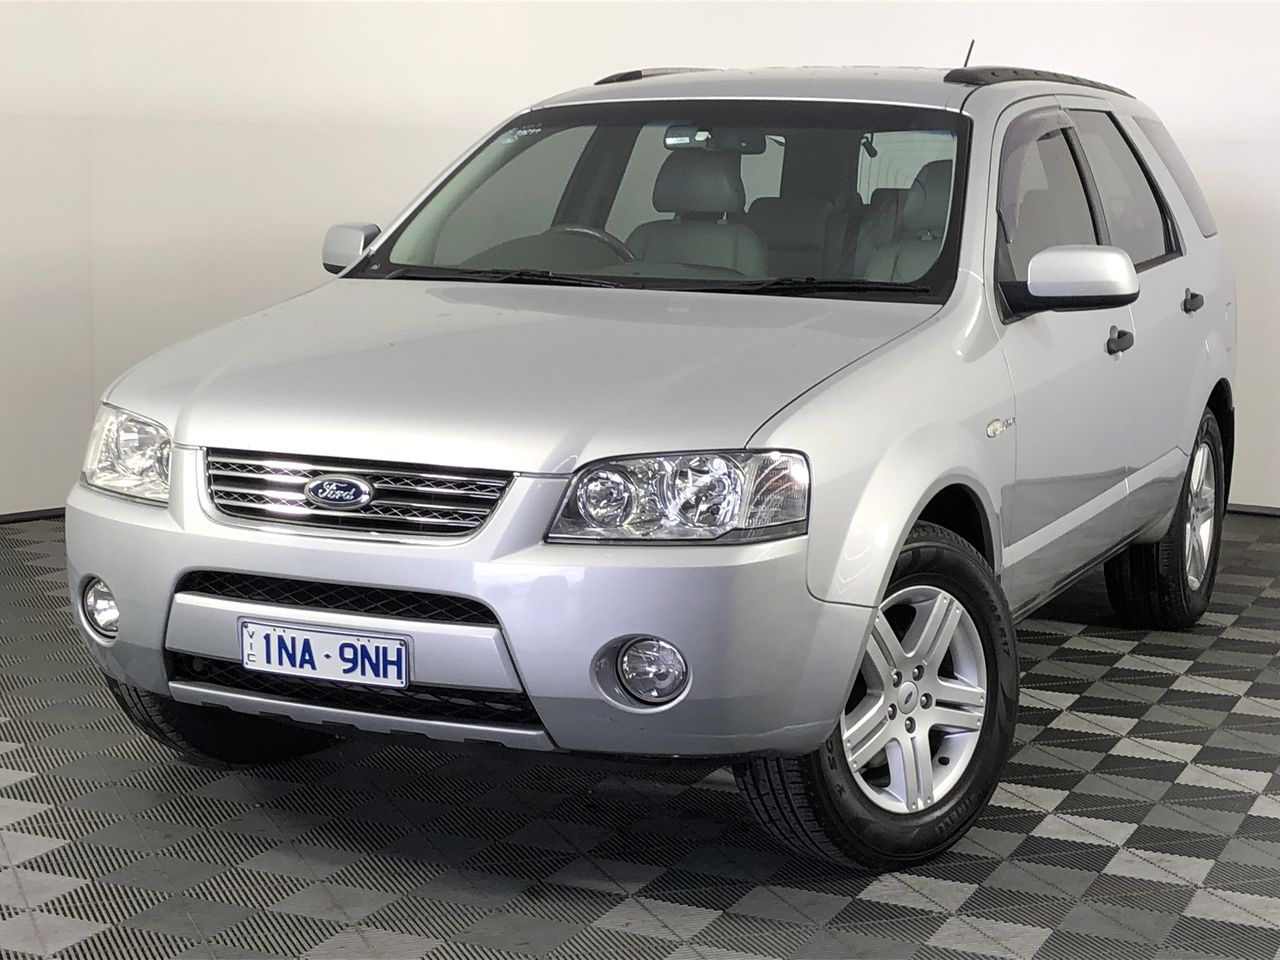 2007 Ford Territory Ghia (4x4) SY Automatic 7 Seats Wagon